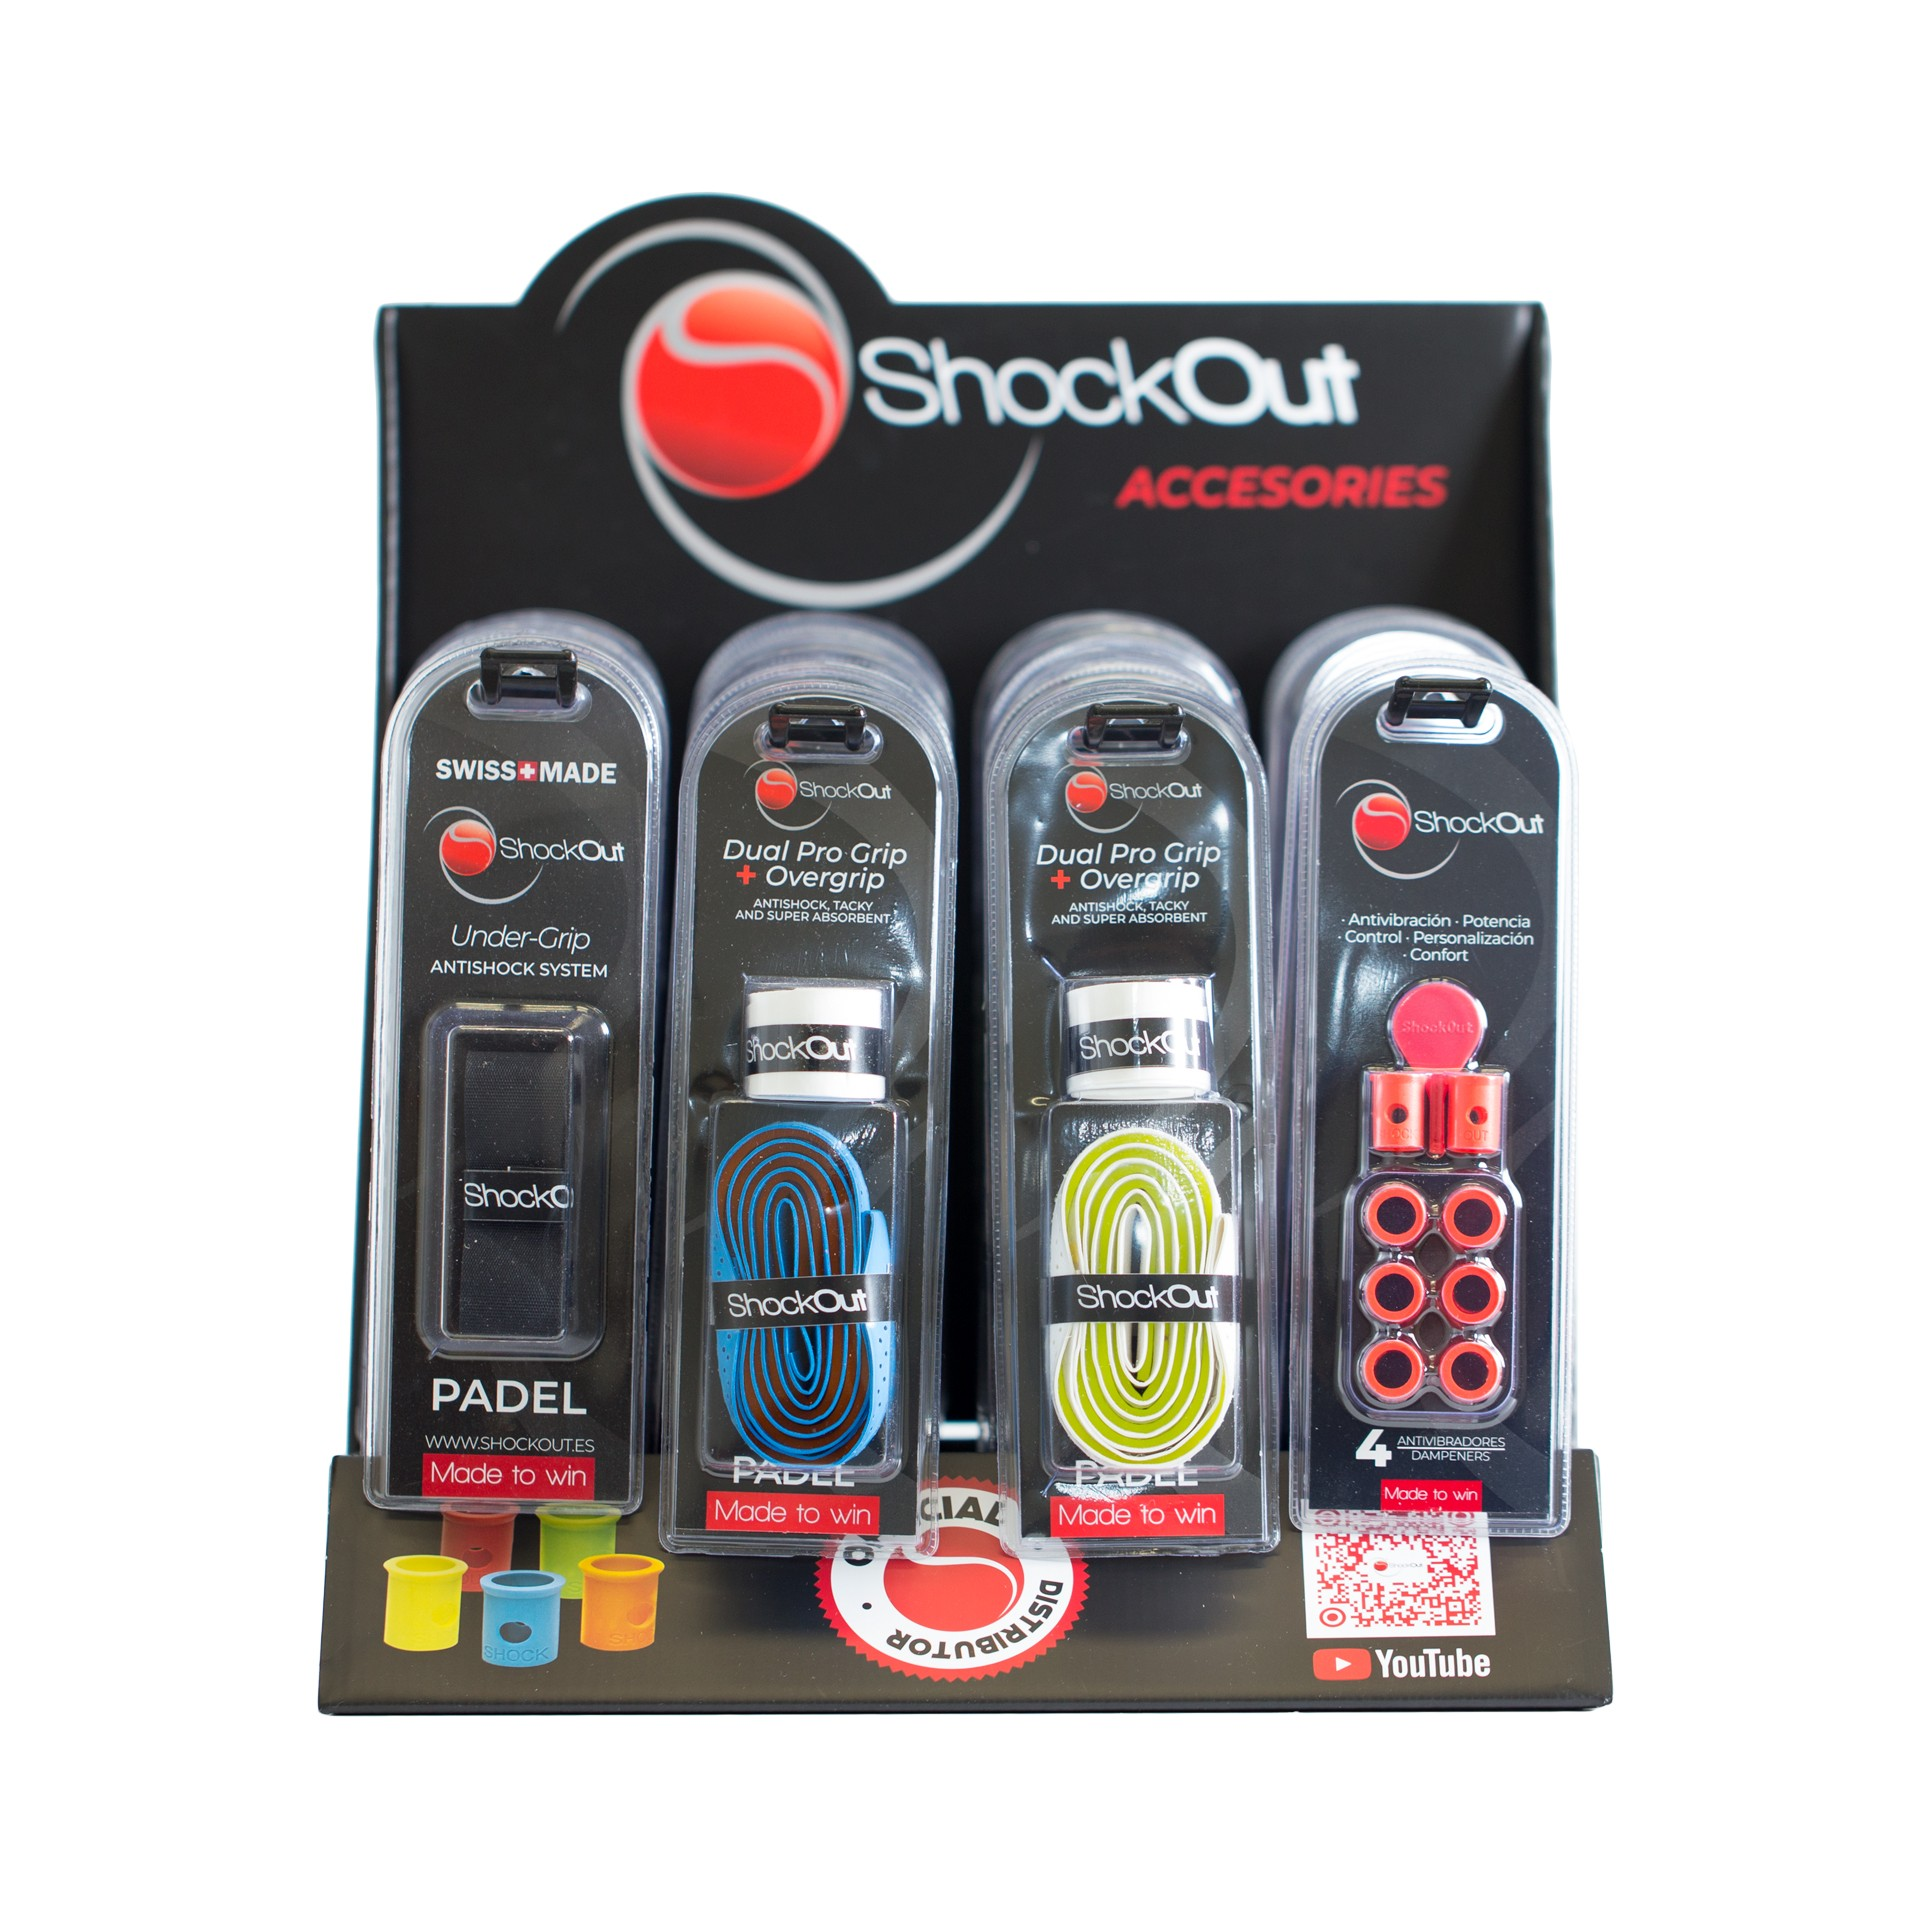 EXPOSITOR SHOCKOUT